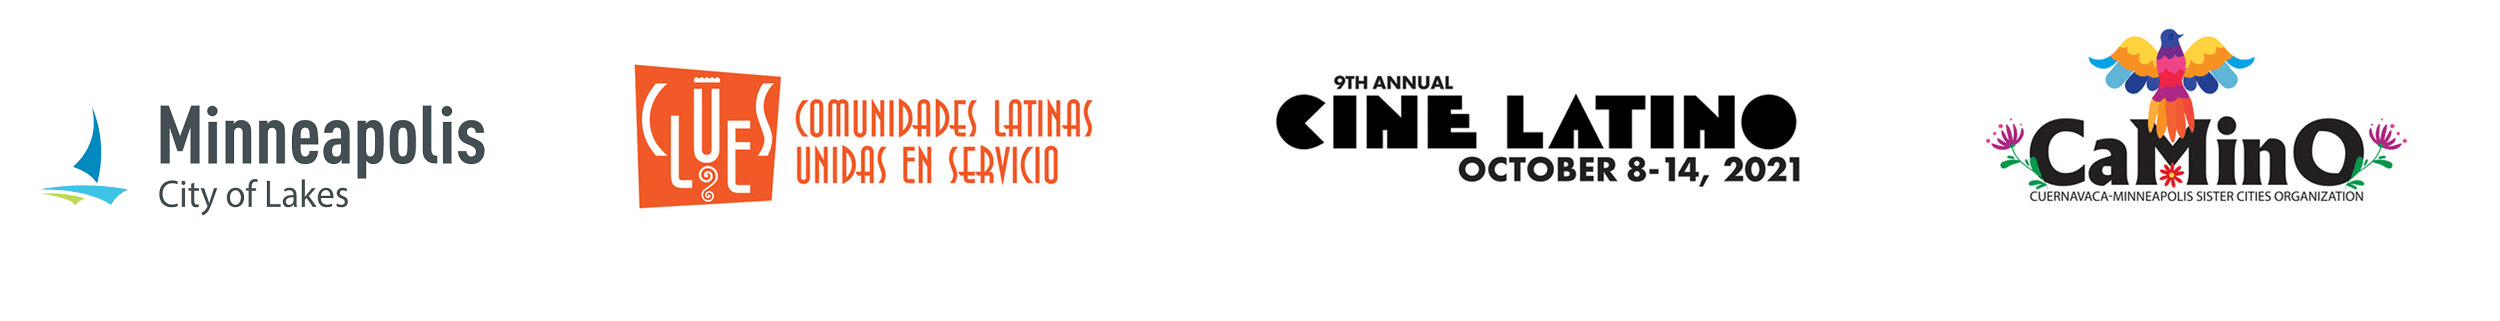 Logo acknowledgements for the City of Minneapolis, Clues, Cine Latino, and Camino